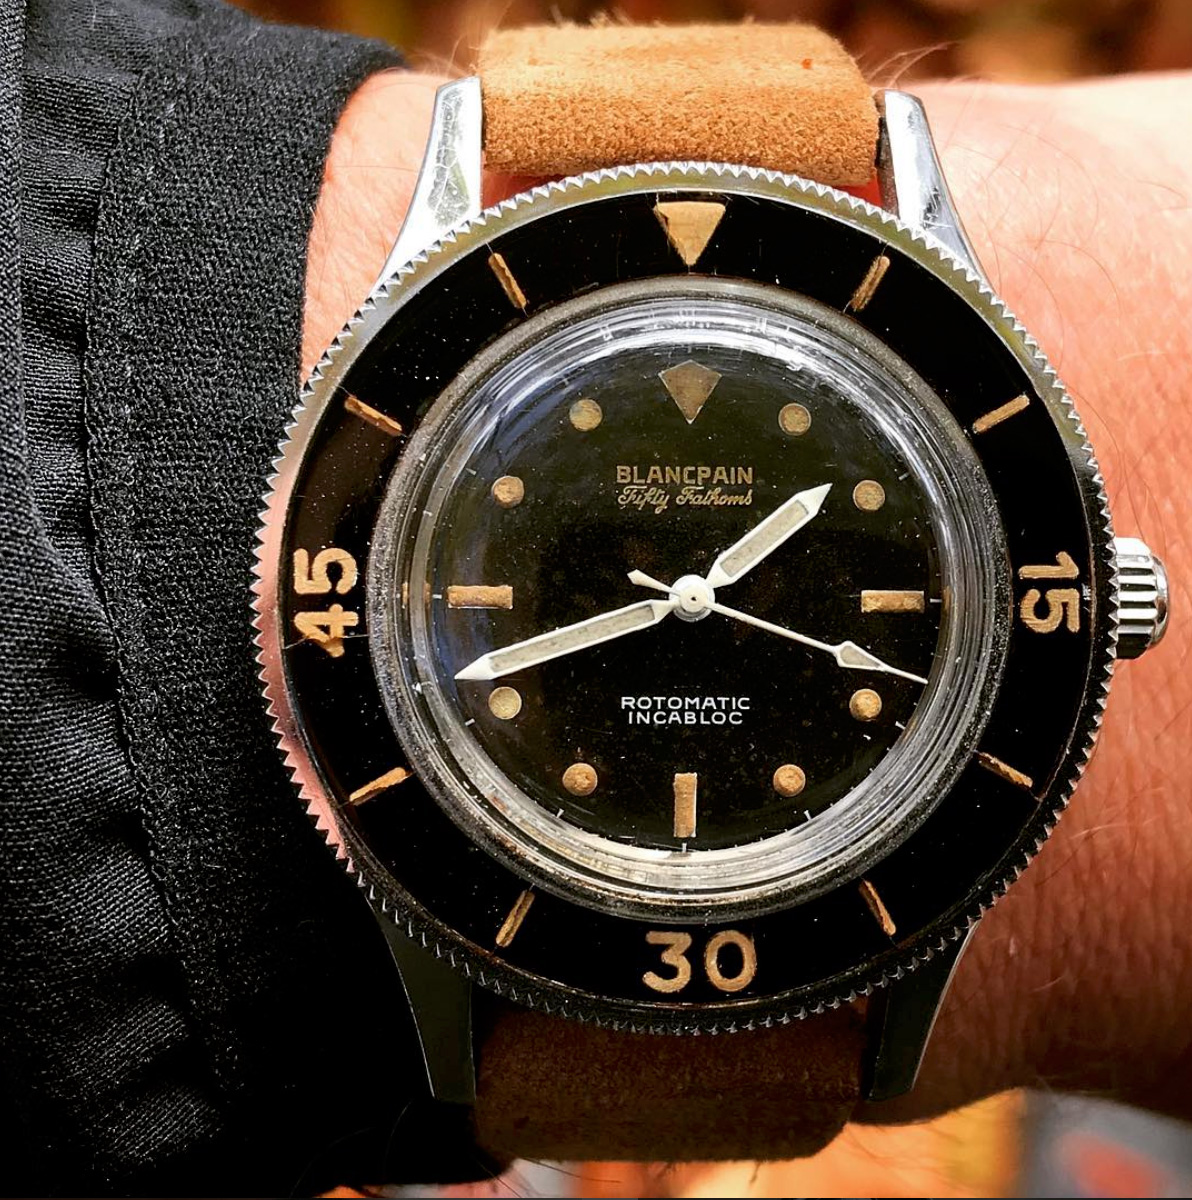 blancpain-fifety-fathoms-mattsworldwatch-3